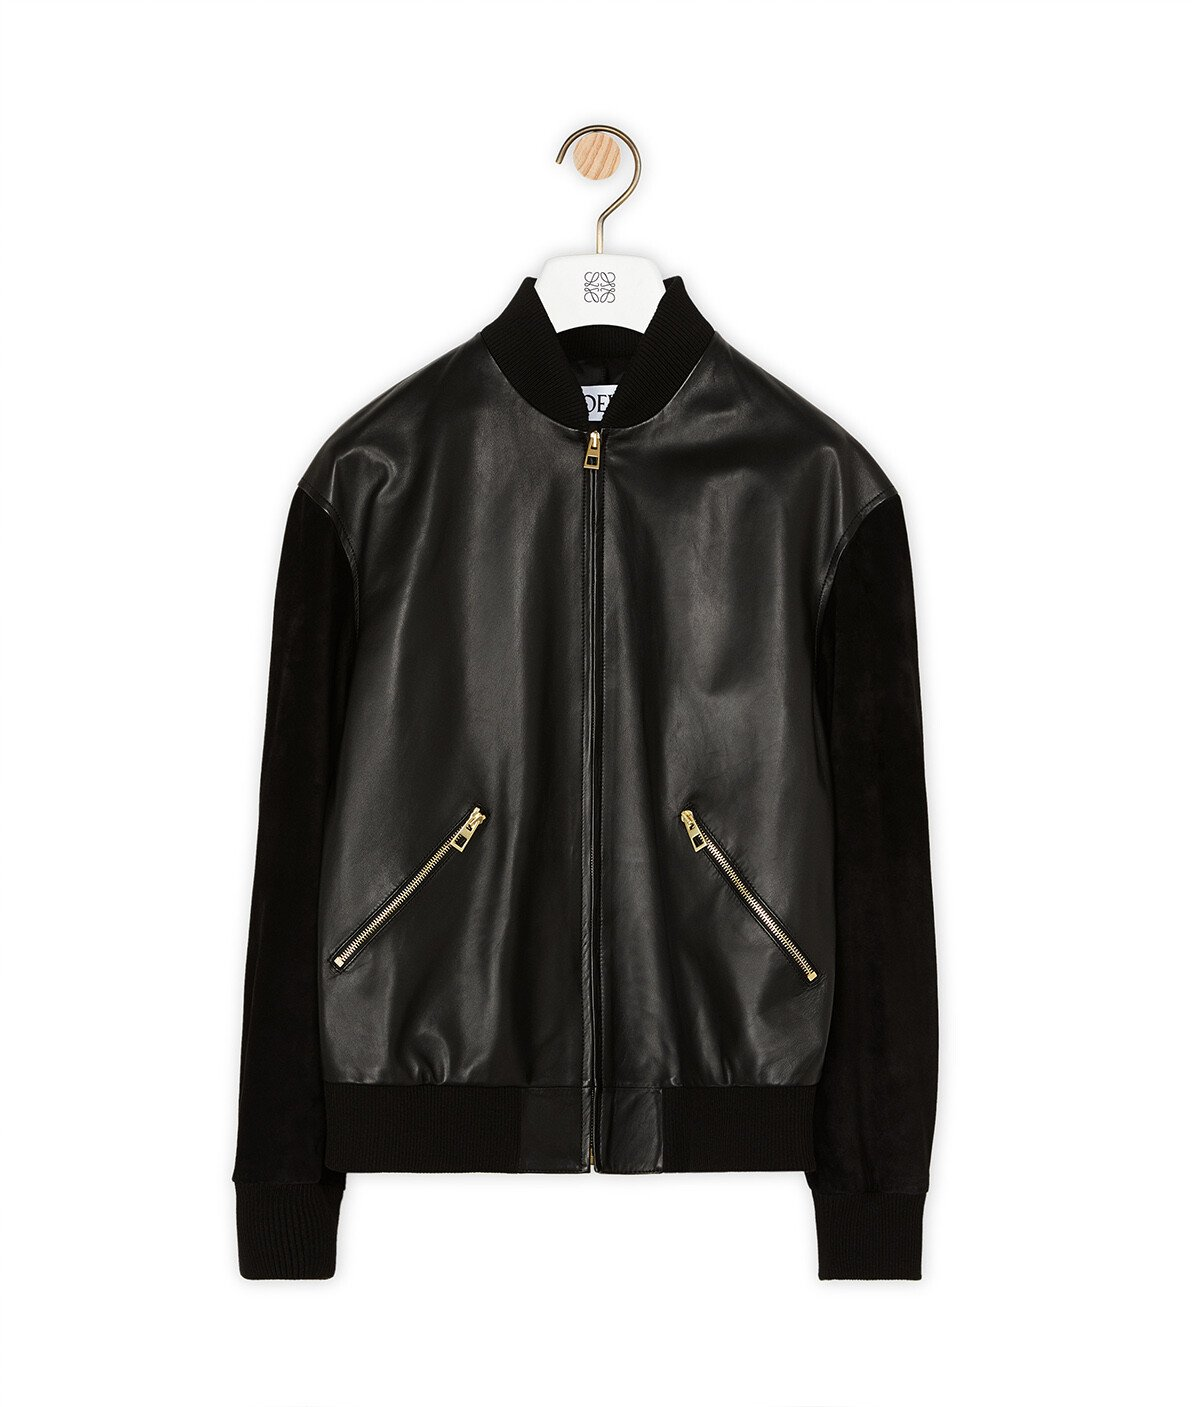 LOEWE Zip Blouson Round Back Patch 黑色/棕褐色 front